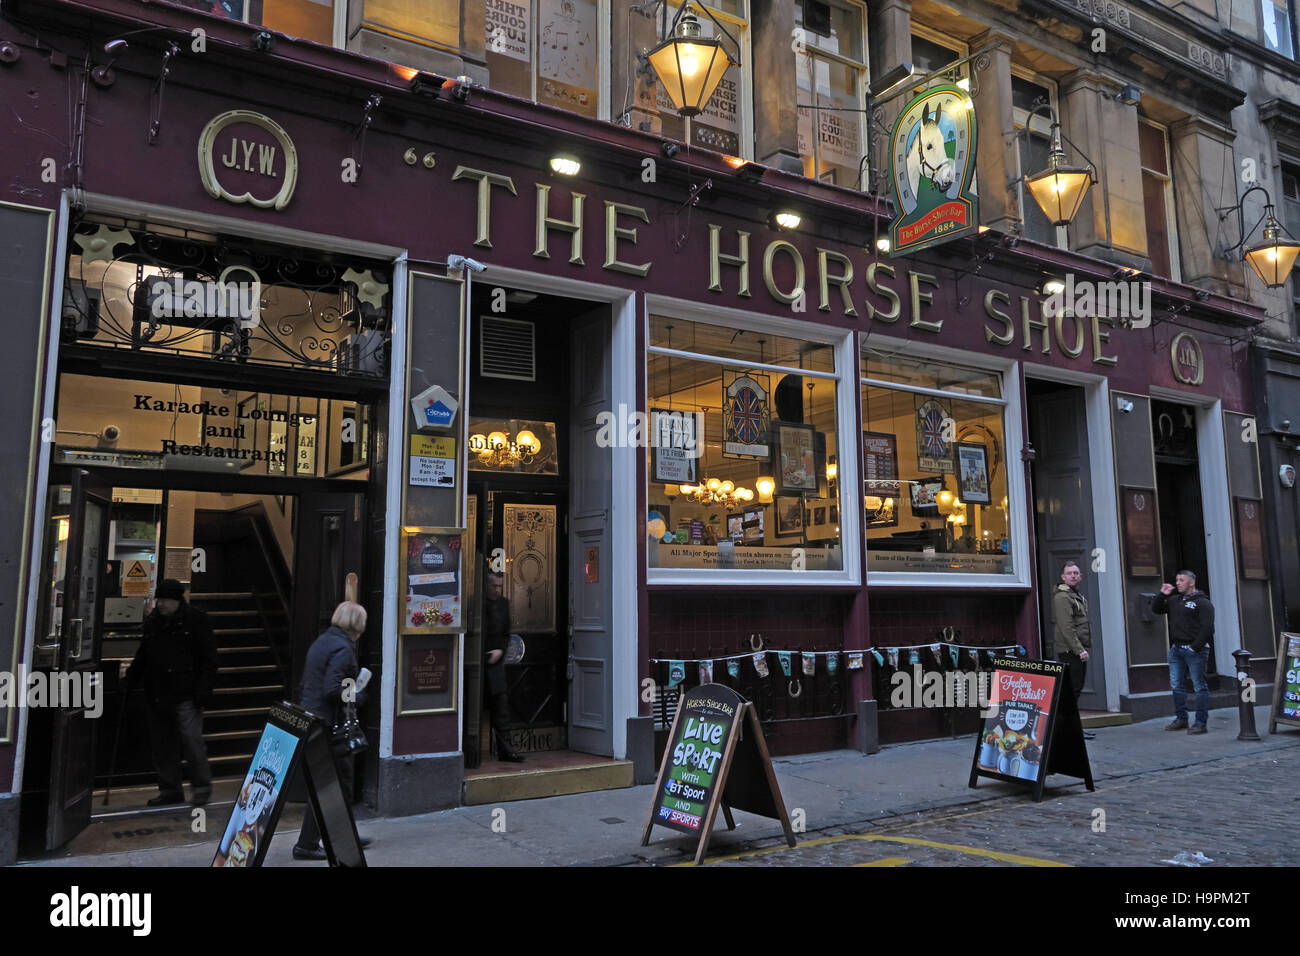 The Horse Shoe Bar, Glasgow, Scotland - Stock Image